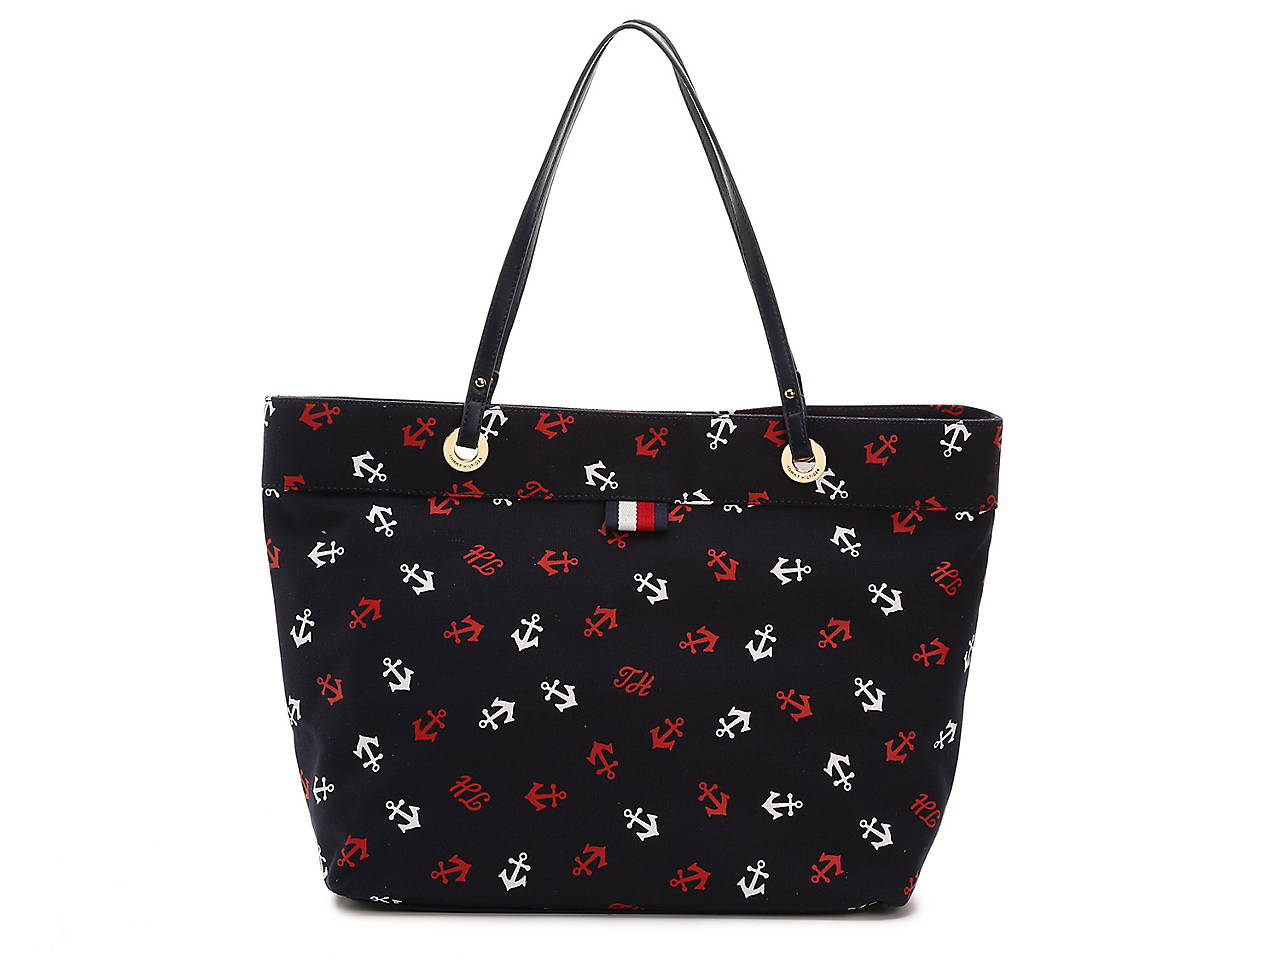 dbf063290cbb Tommy Hilfiger Anchor Tote Women s Handbags   Accessories